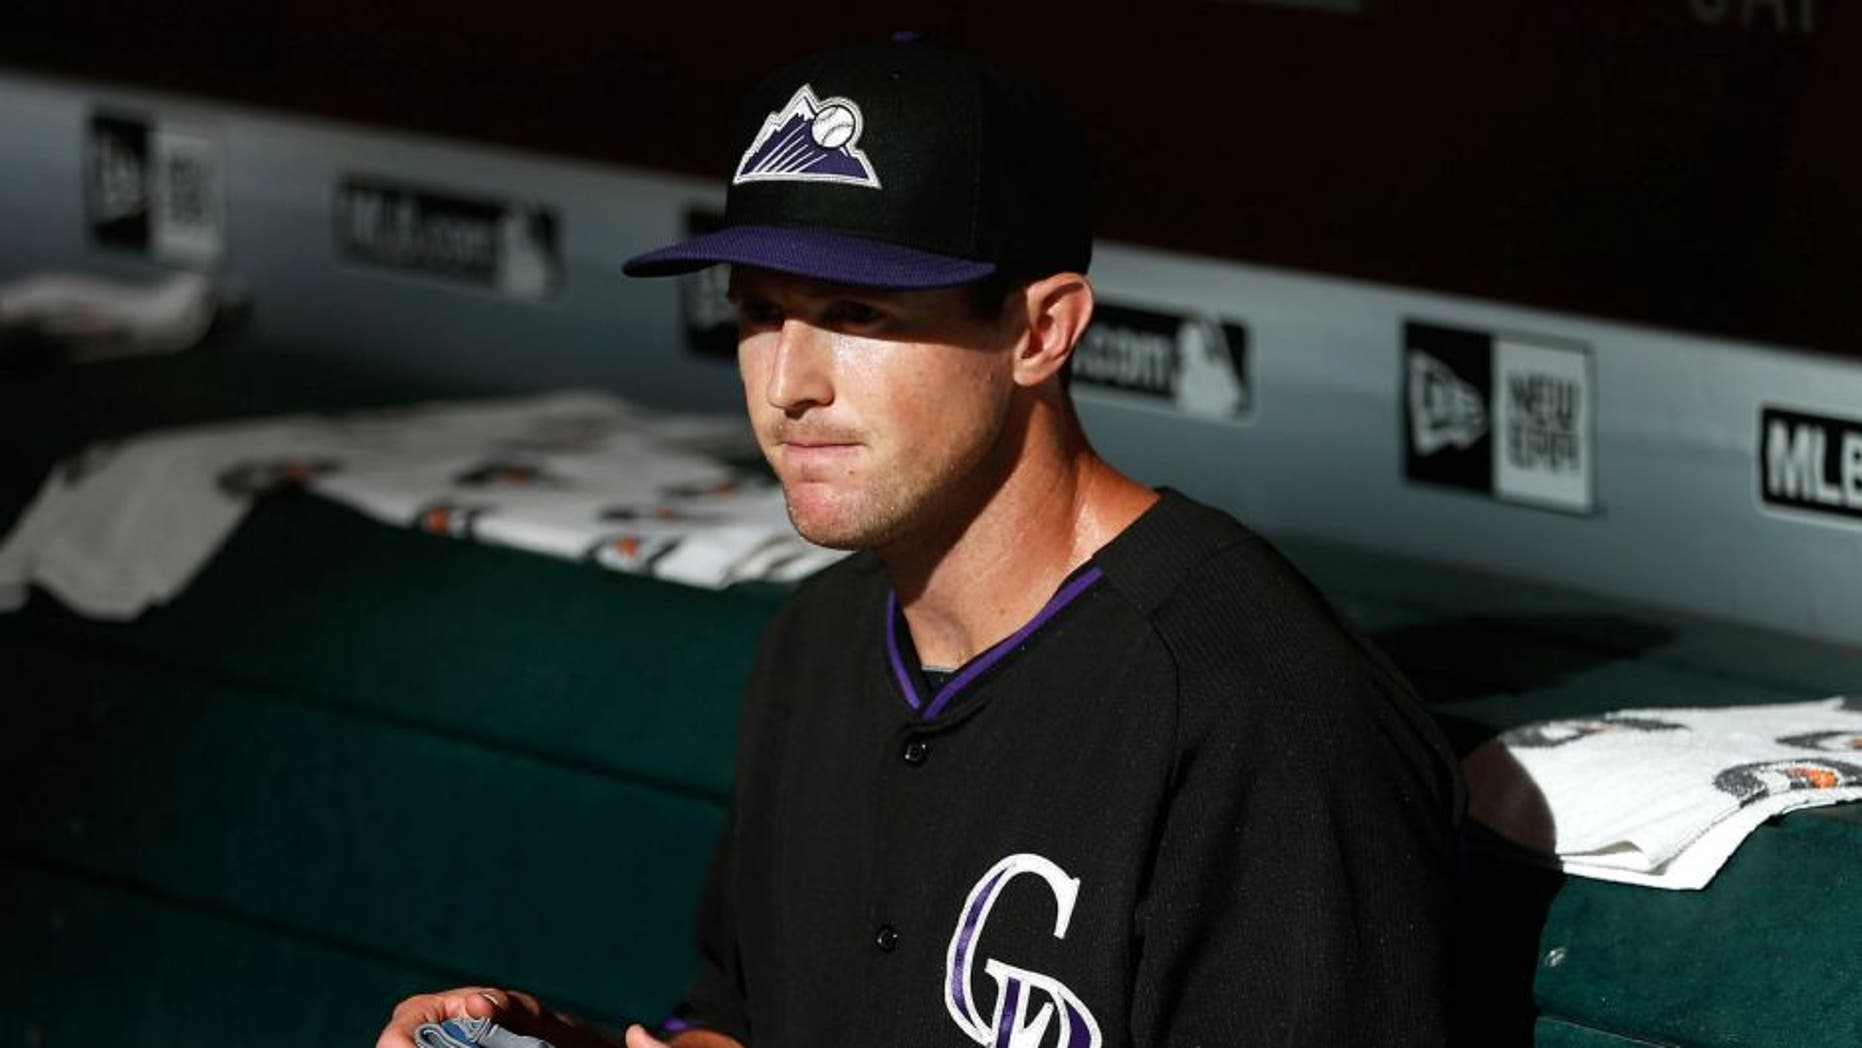 PHOENIX, AZ - JULY 03: Drew Stubbs #13 of the Colorado Rockies sits in the dugout before the MLB game against the Arizona Diamondbacks at Chase Field on July 3, 2015 in Phoenix, Arizona. (Photo by Christian Petersen/Getty Images)